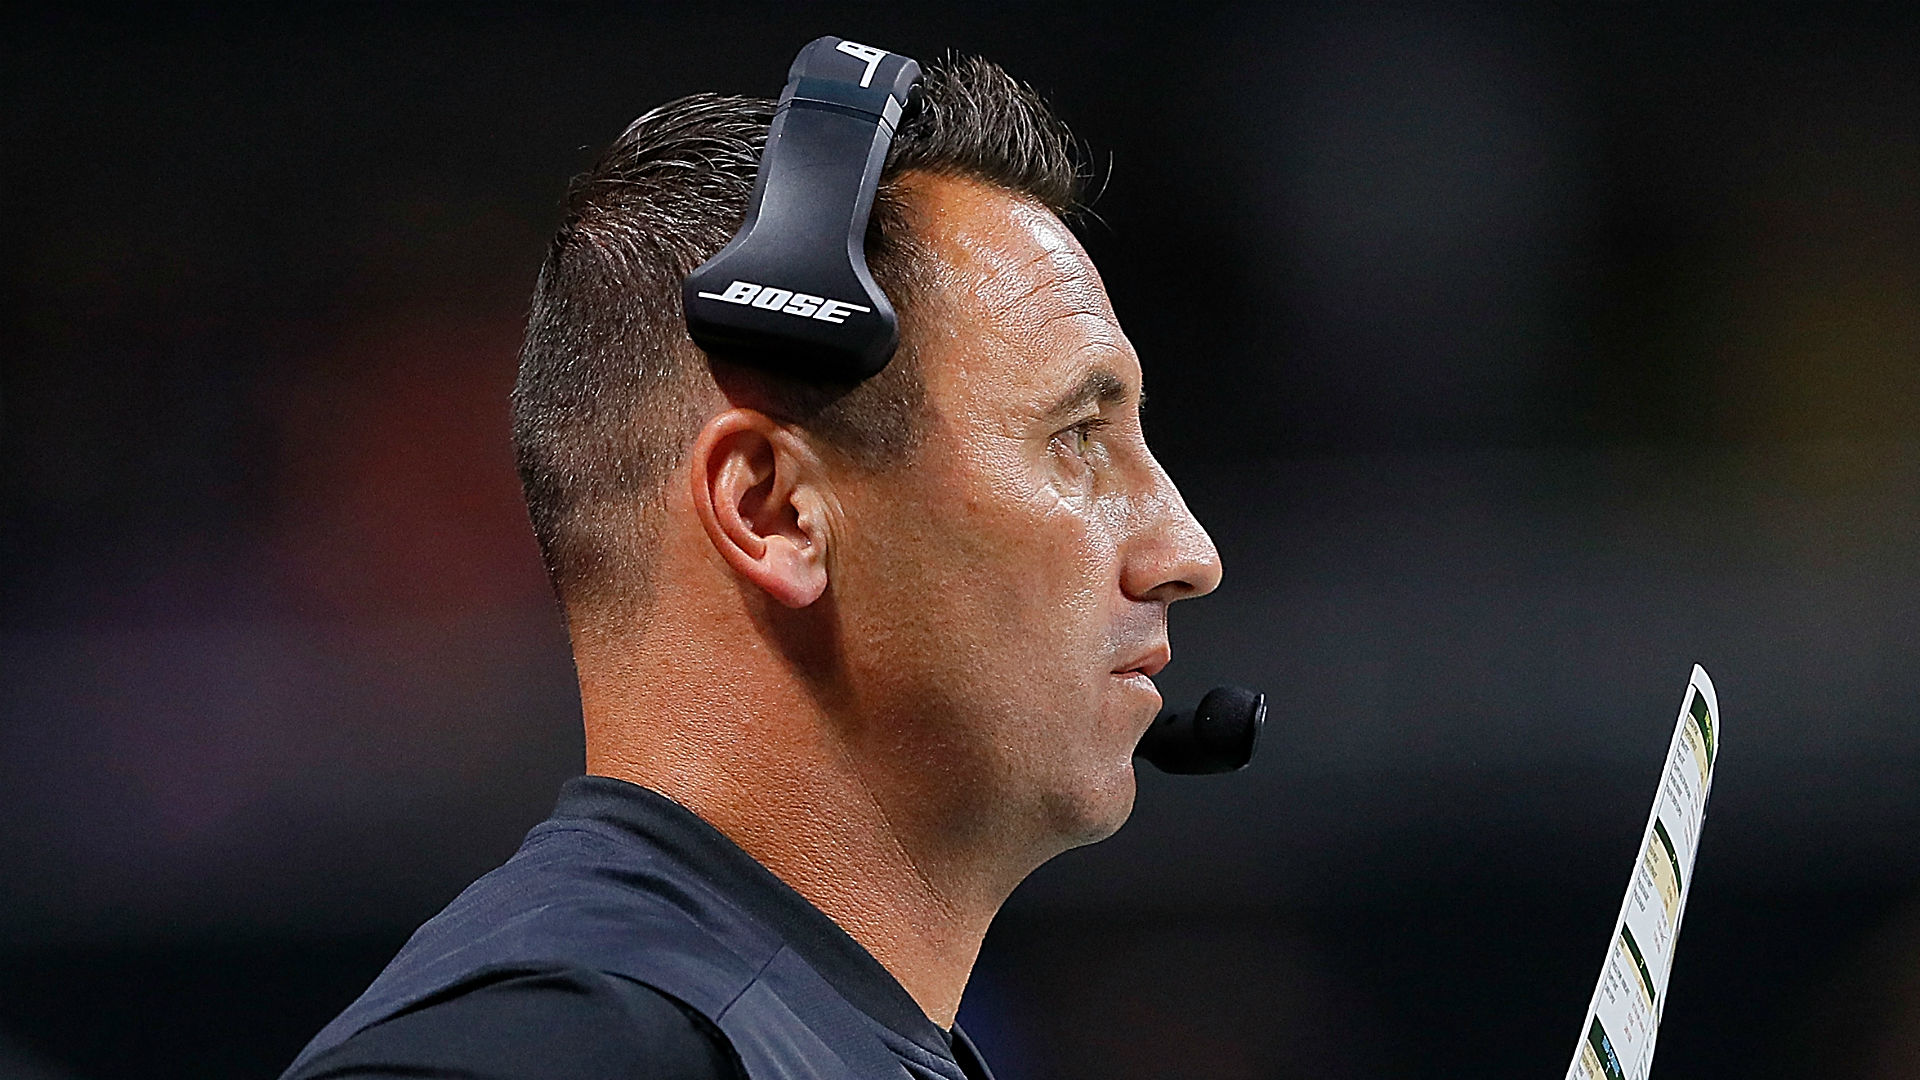 Steve Sarkisian turns down Cardinals OC job for Alabama, report says